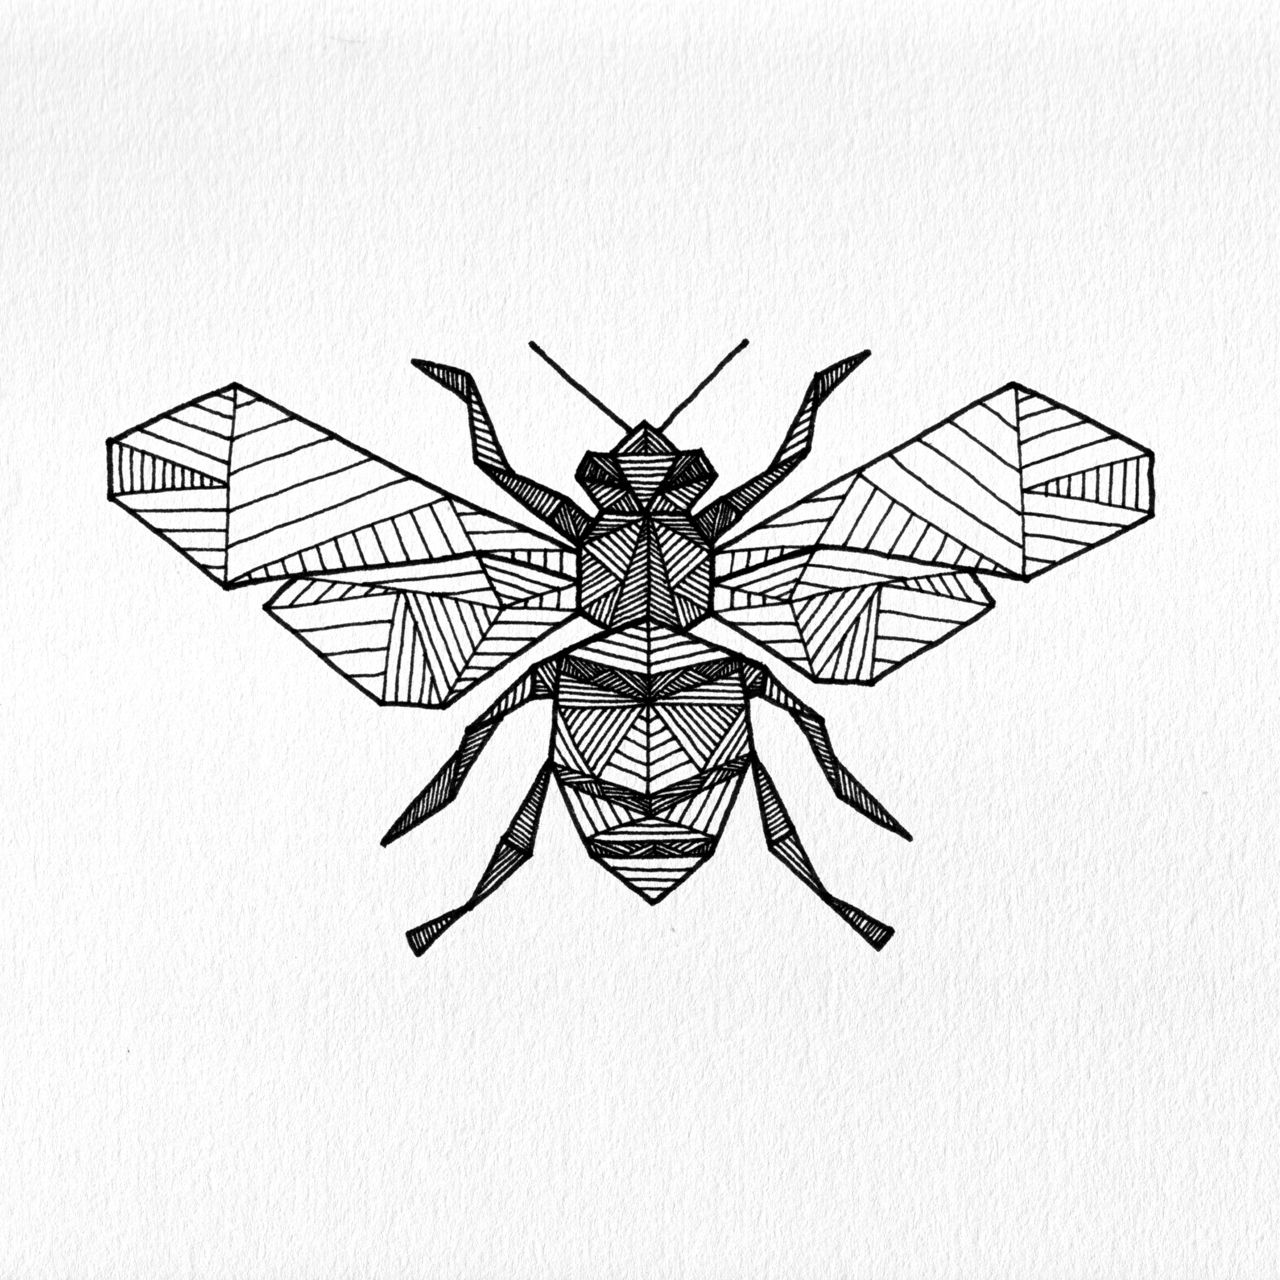 """Last August I got stung in the mouth by a bee (crawled inside my coconut water) - and this weekend I was stung in the throat (while sleeping). Hey bees, I'm listening… 2x2"""" ink doodle """"..."""